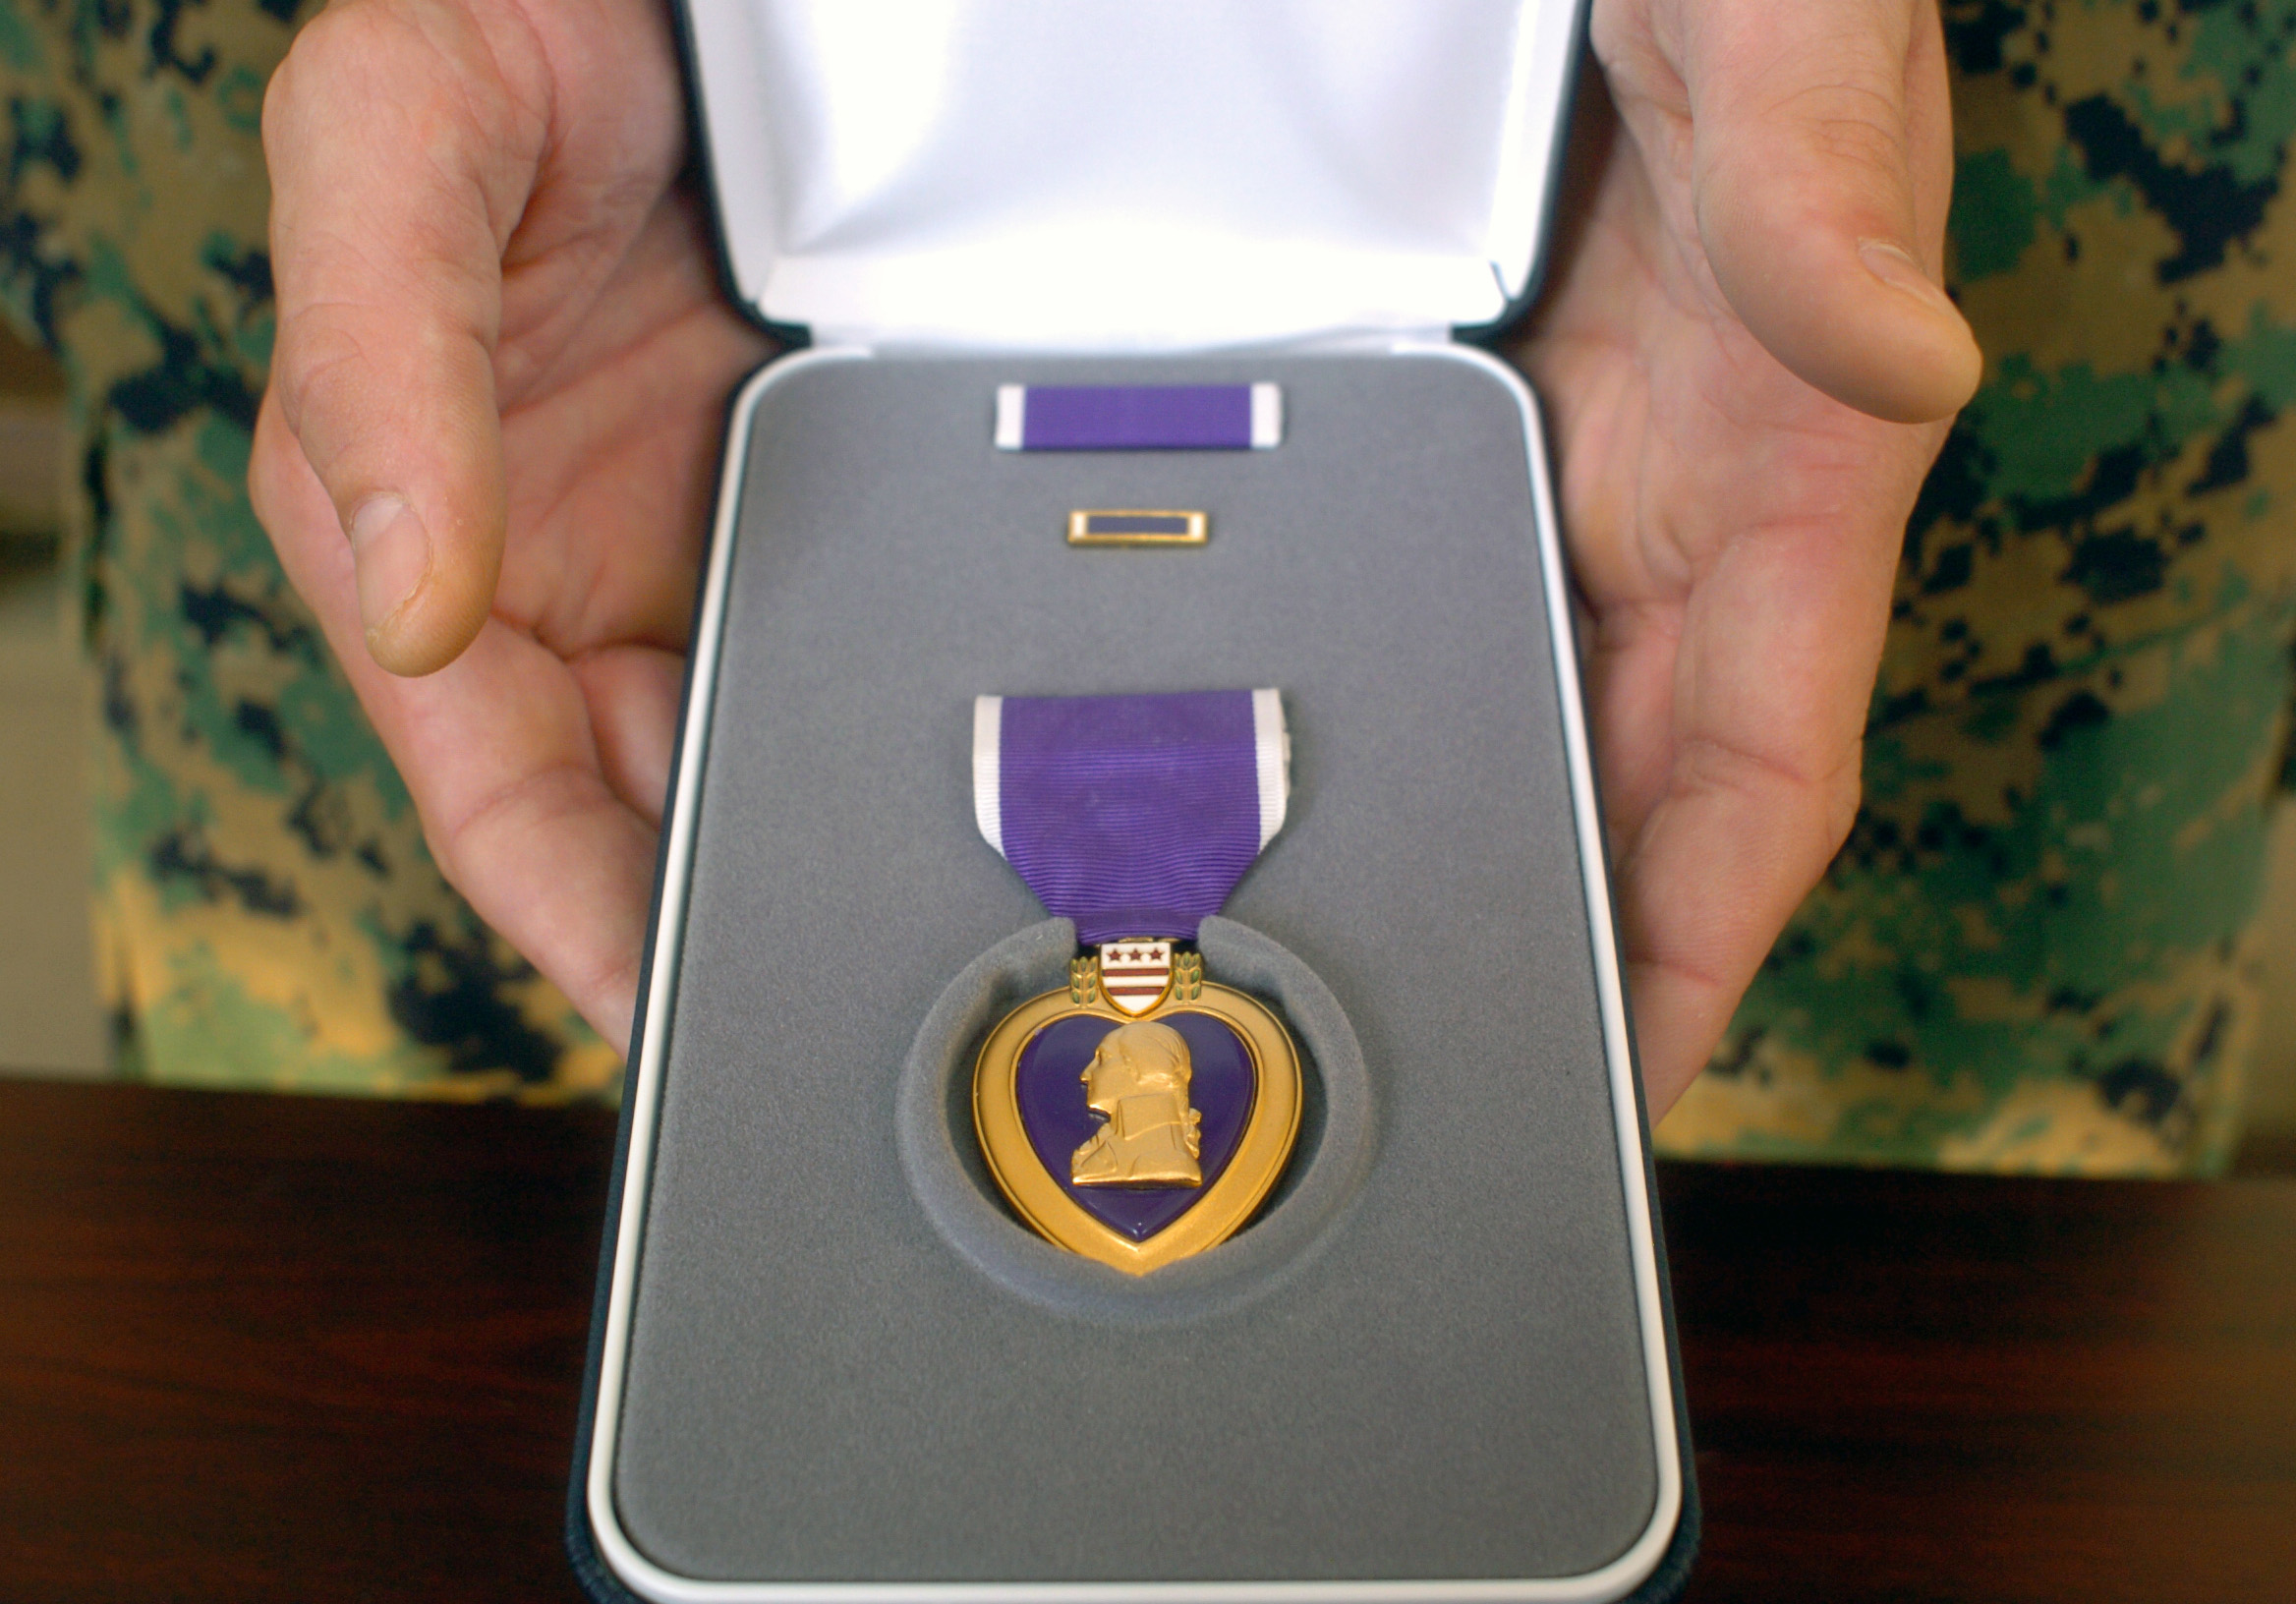 Rep. Paul Cook Introduces Legislation To Prohibit The Sale Of Purple Hearts Featured